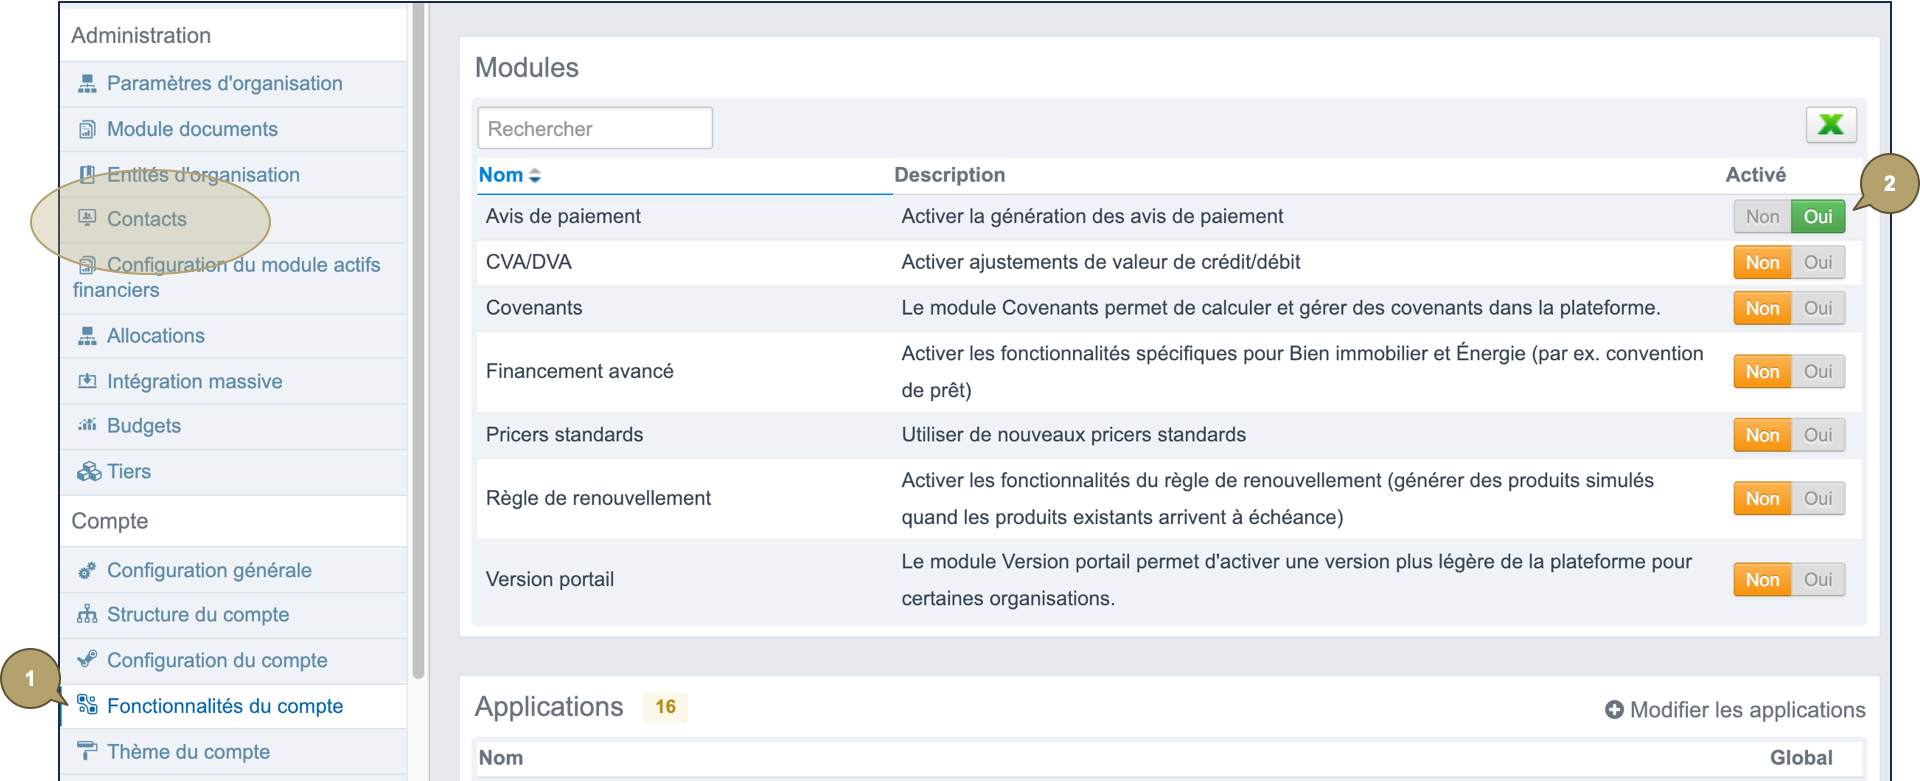 AccountAdministration_Module_FR.png